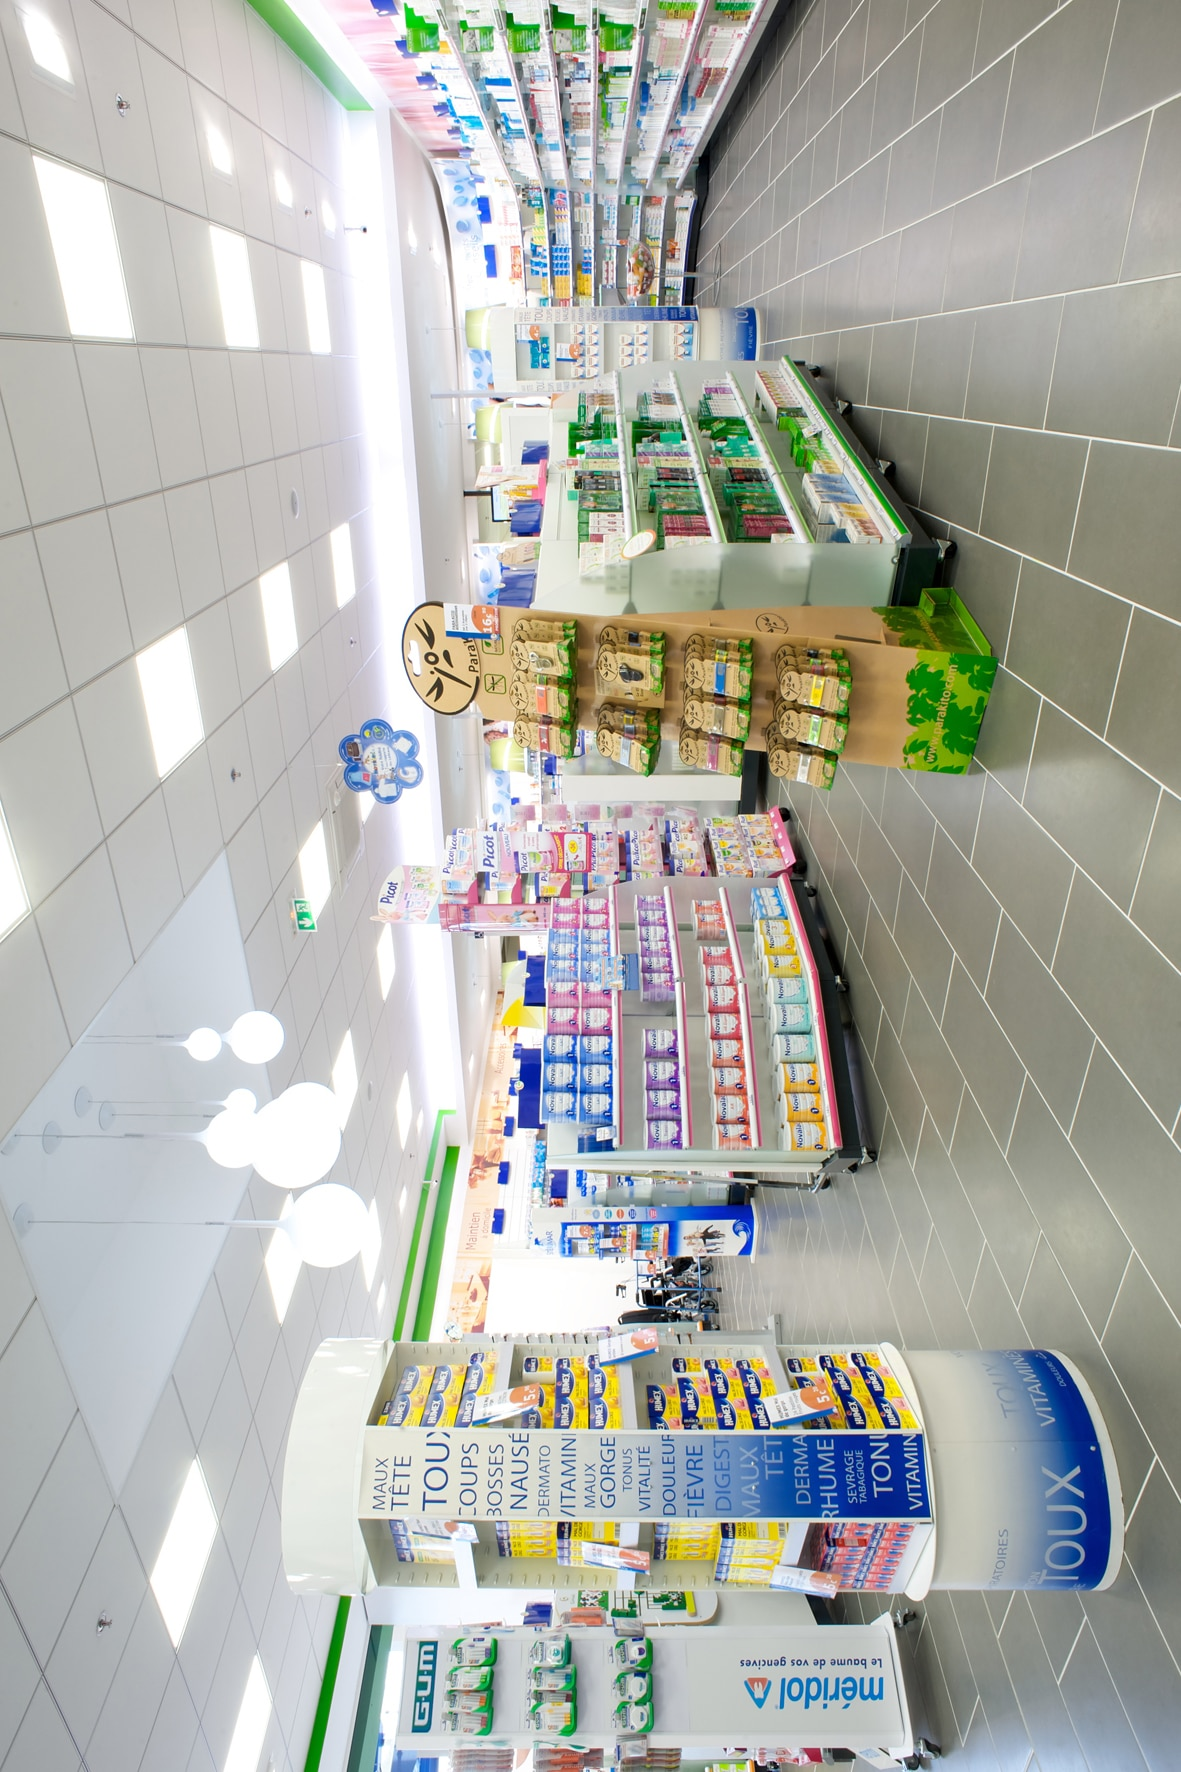 POTET_PHARMACIE_CENTRE_COMMERCIAL3